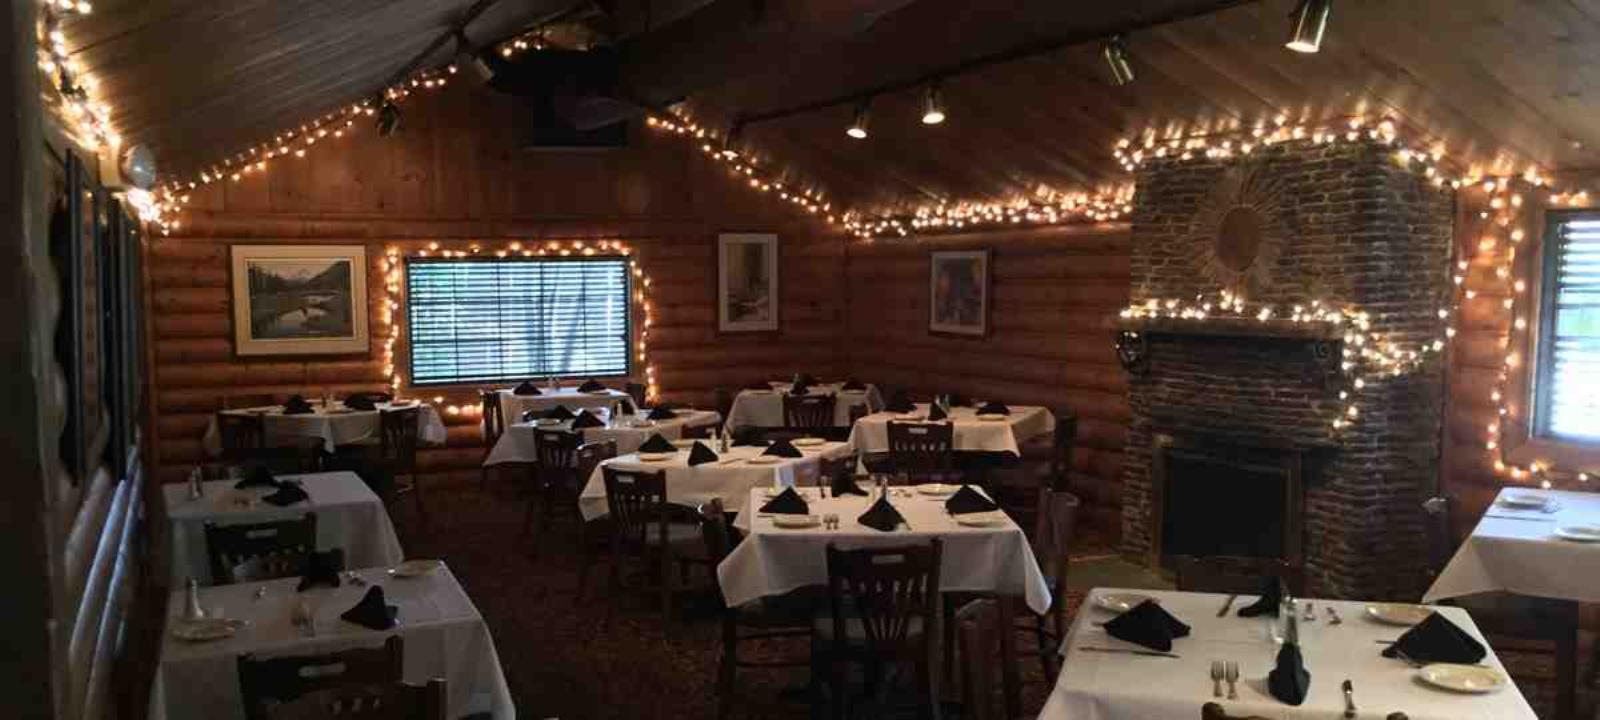 The Cabin of Willowick Restaurant - Picture